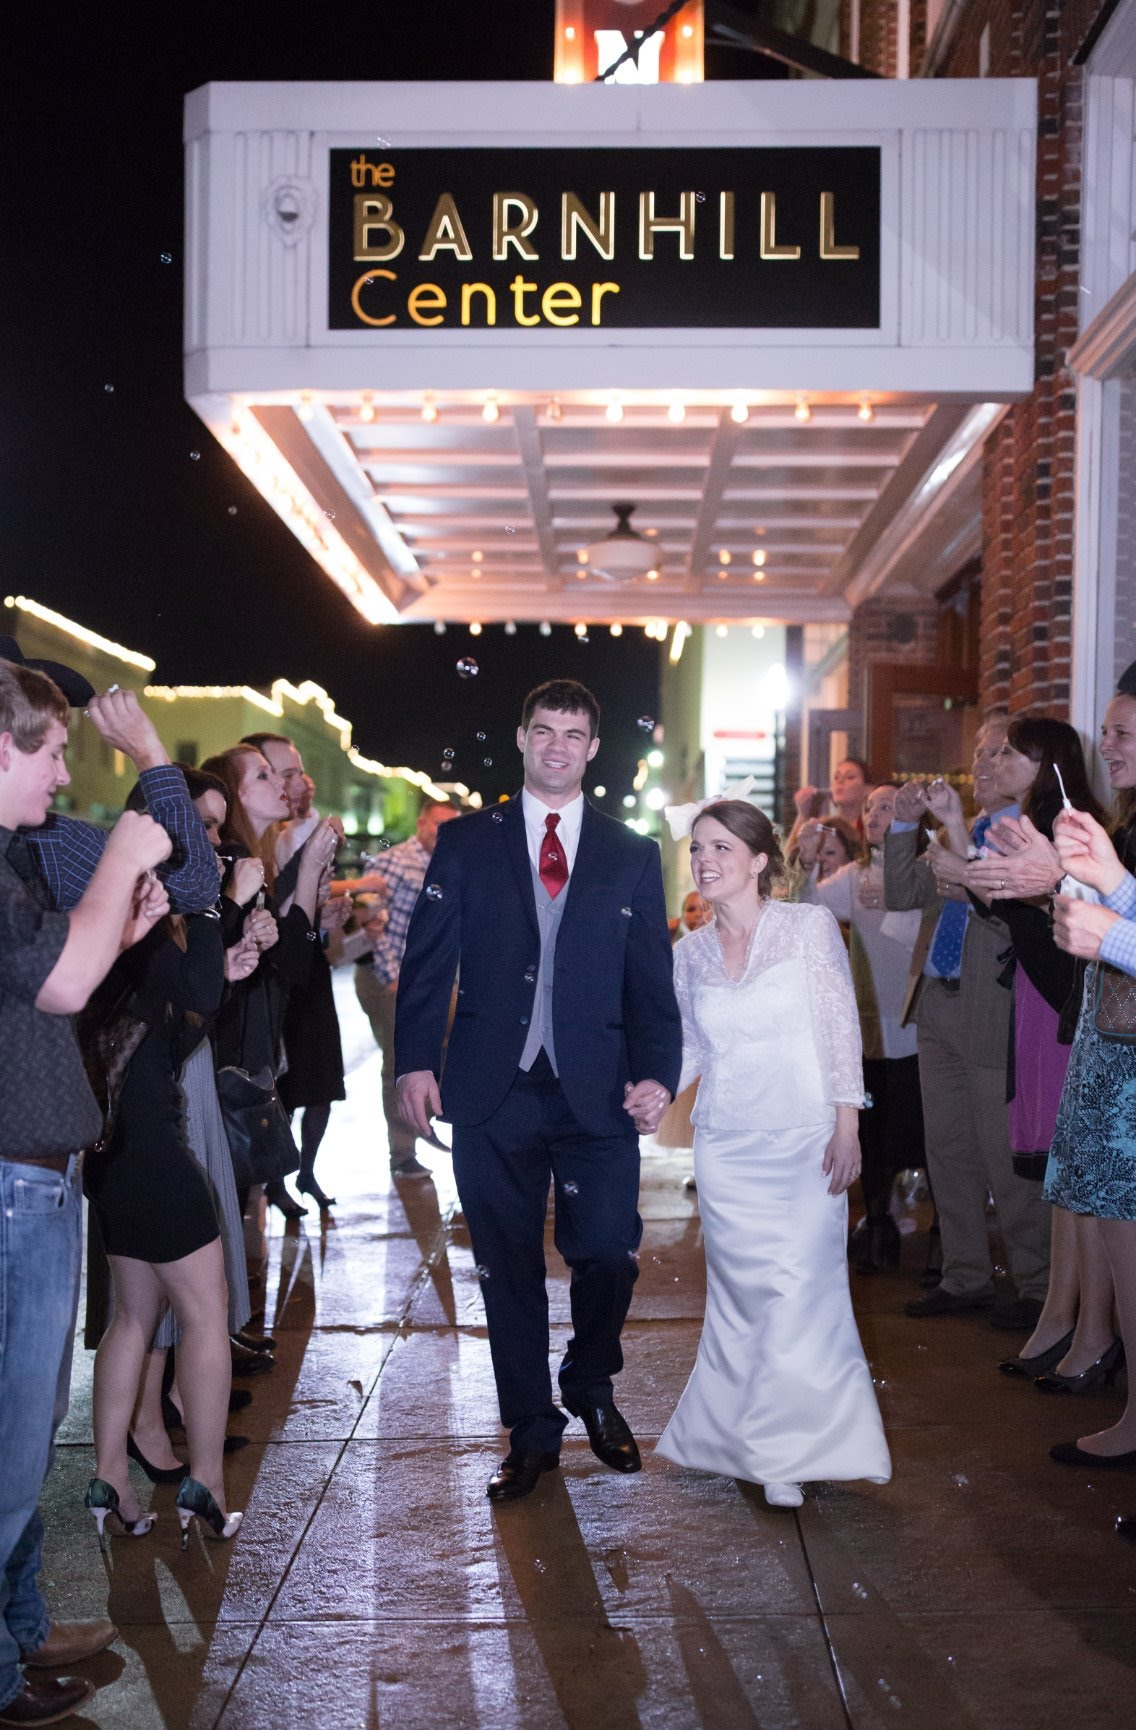 A happily married couple depart their wedding reception at The Barnhill Center as guests line the sidewalk outside and wish them well.